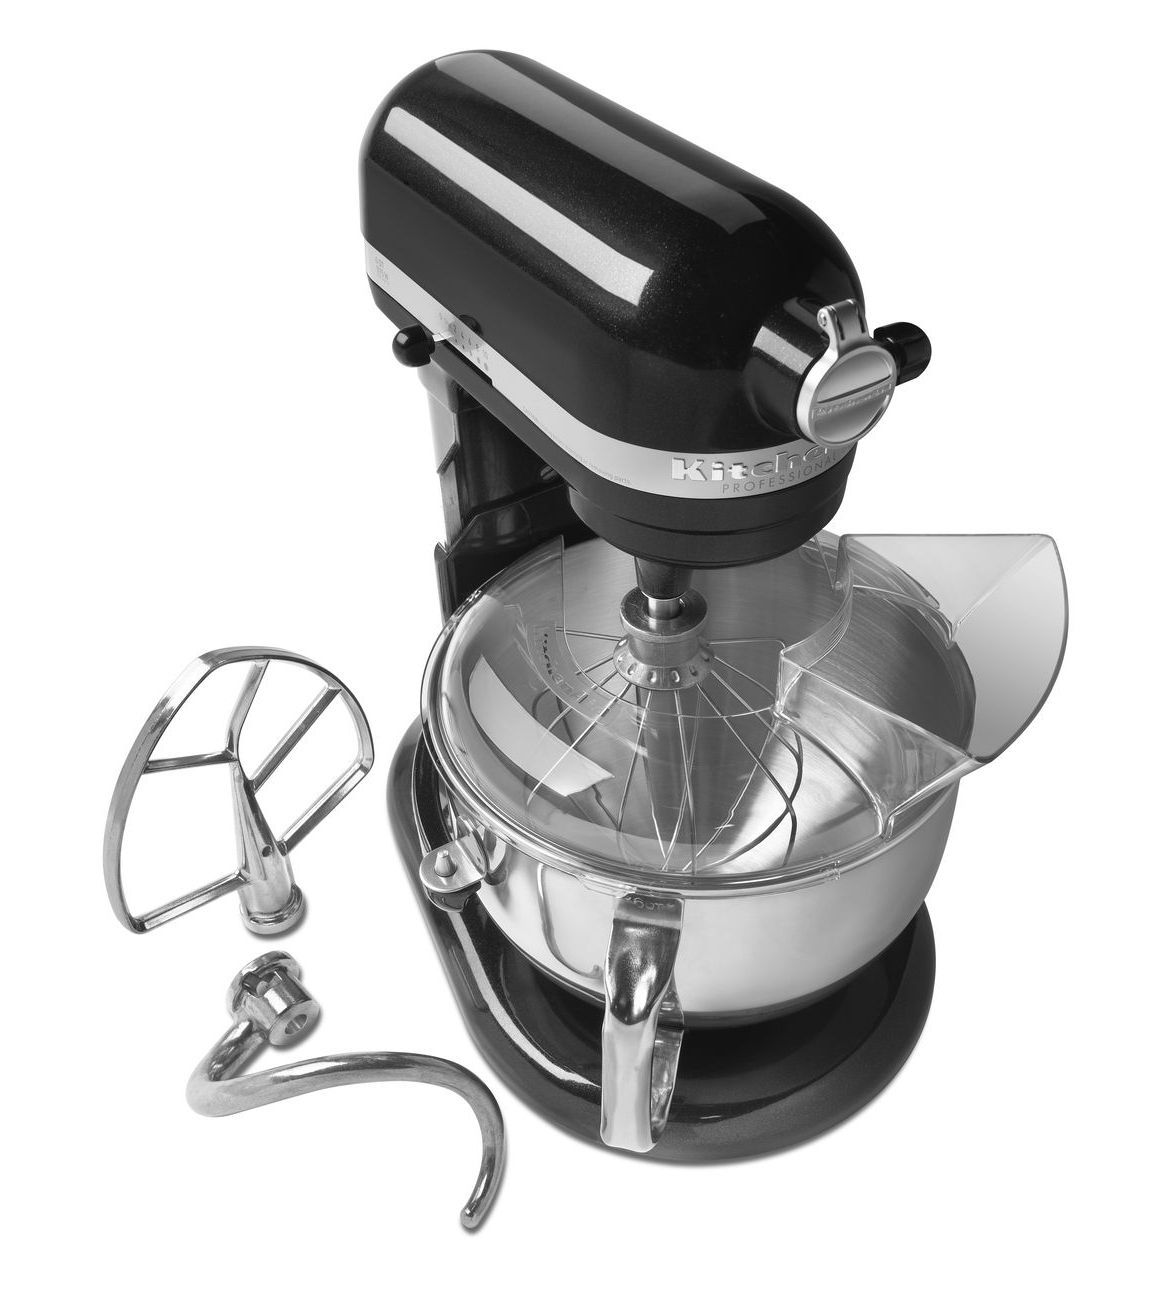 KitchenAid Professional 600 Series 6 Quart Bowl Lift Stand Mixer (KP26M1XGA  Green Apple)